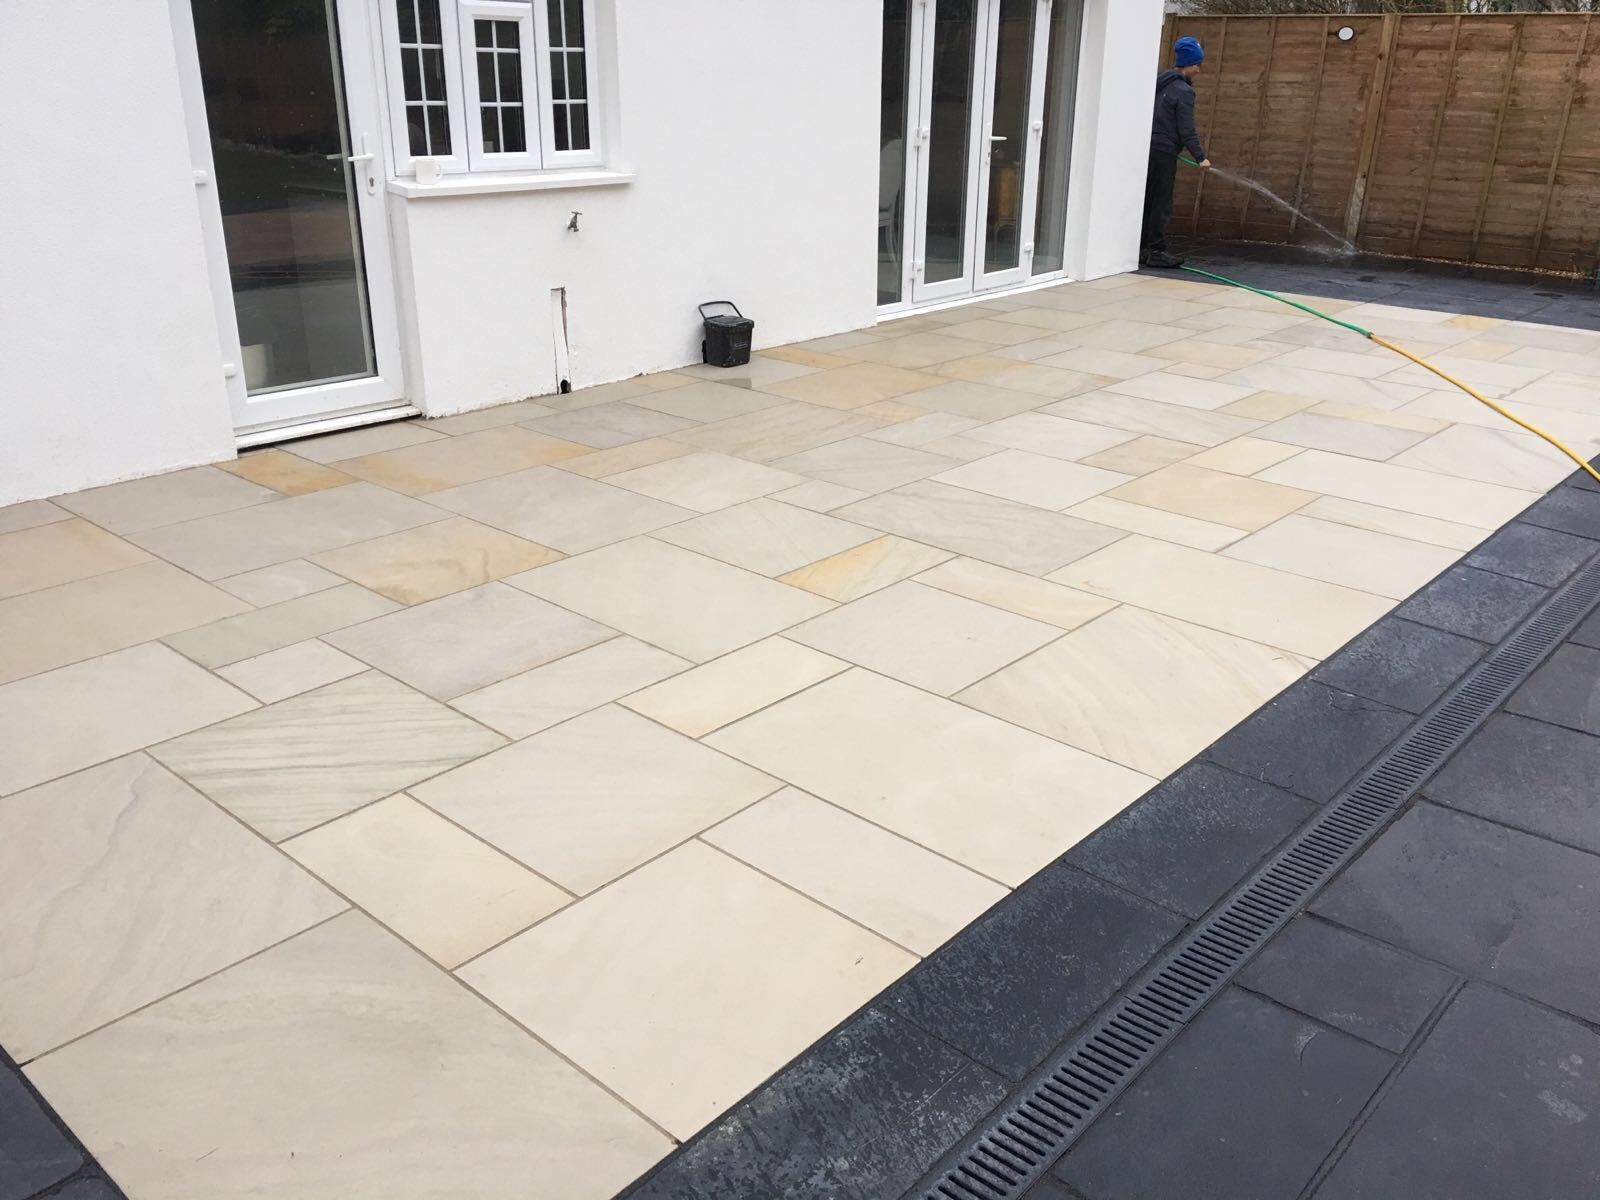 Honed Mint Indian Sandstone Natural Calibrated Patio Paving Slabs Pack 15.5m2 22mm